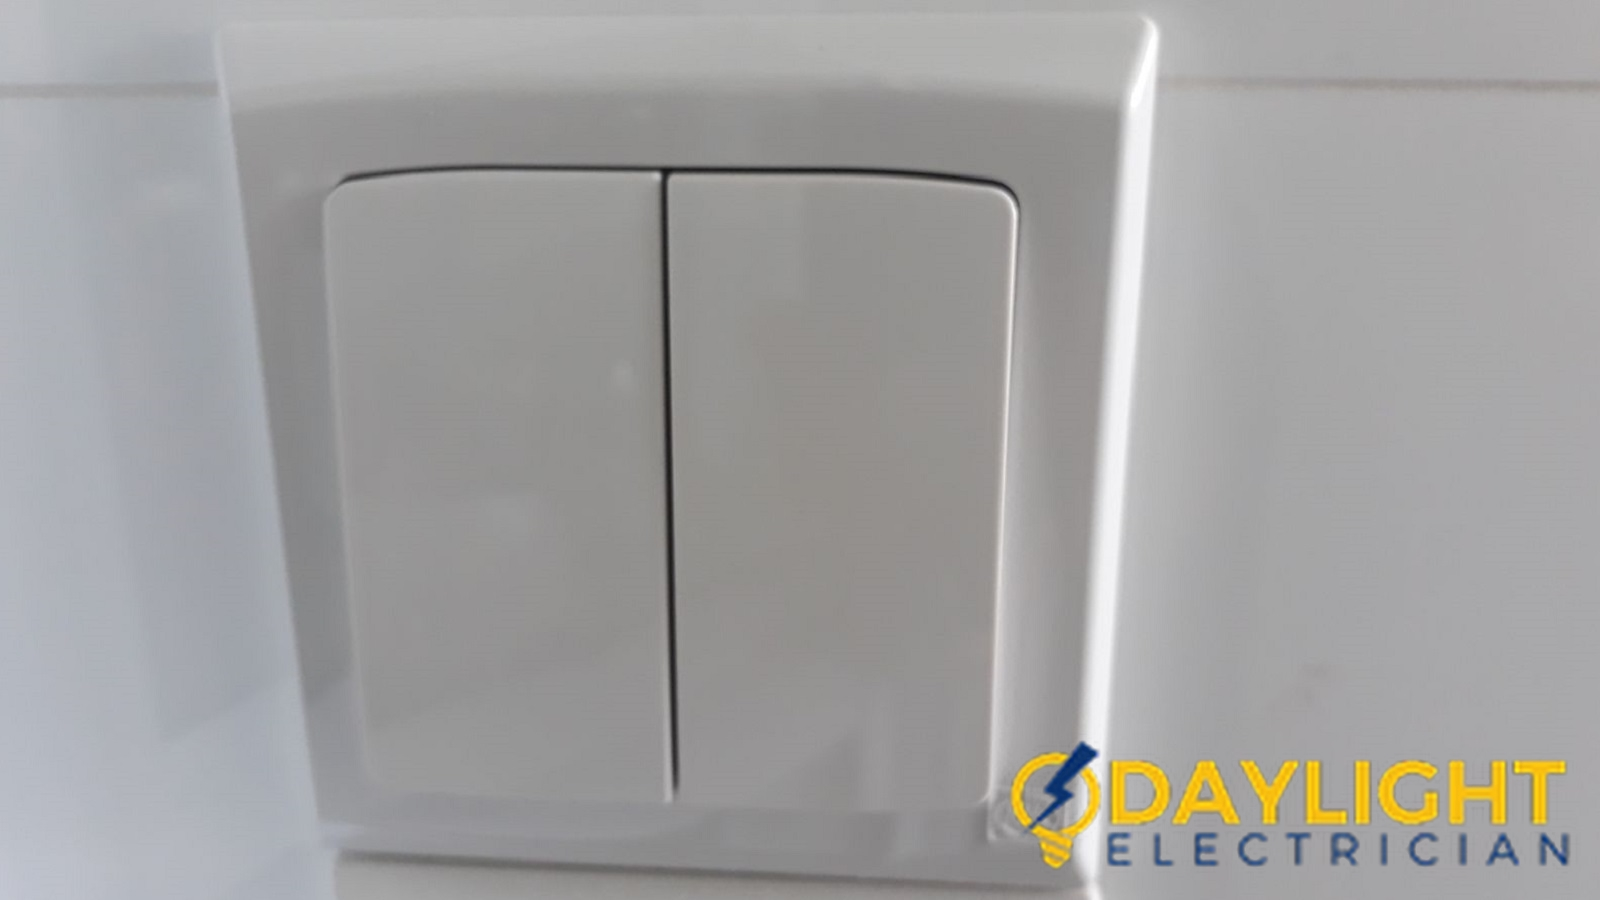 Readjusting-Light-Switch-Incorrect-Configuration-Electrician-Singapore-HDB-Tampines_wm